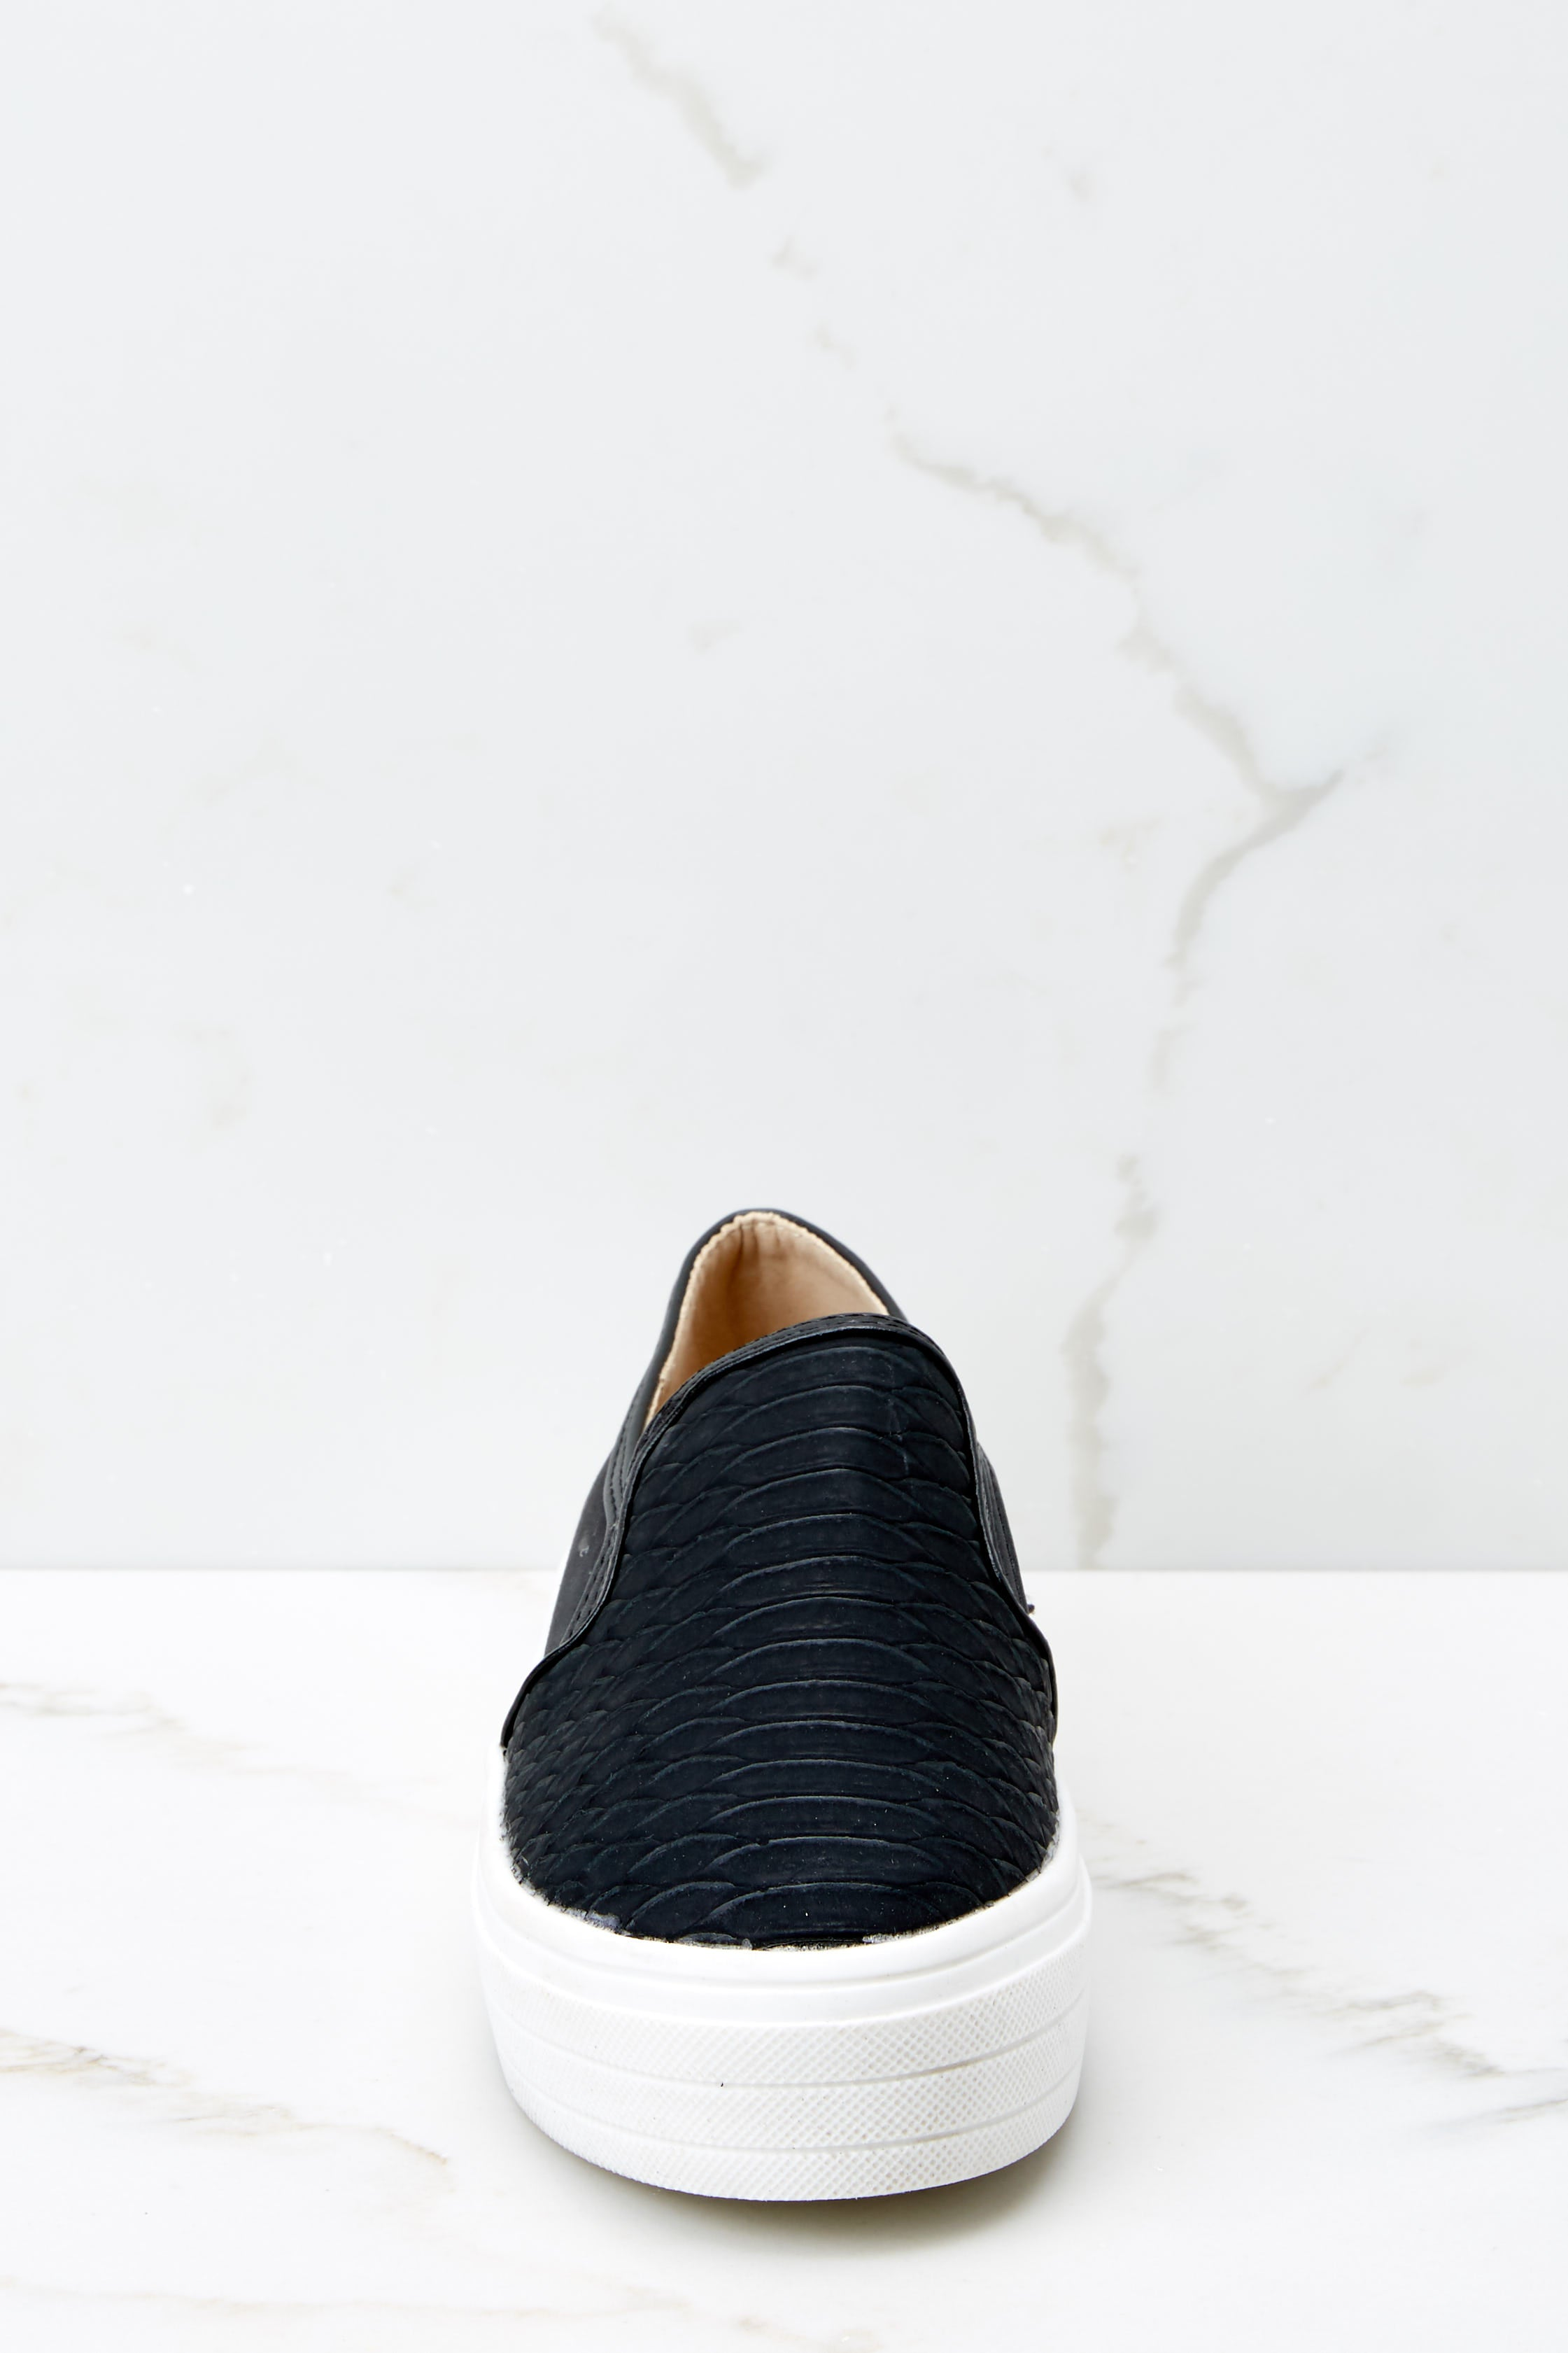 2 Into High Gear Black Slip On Sneakers at reddressboutique.com